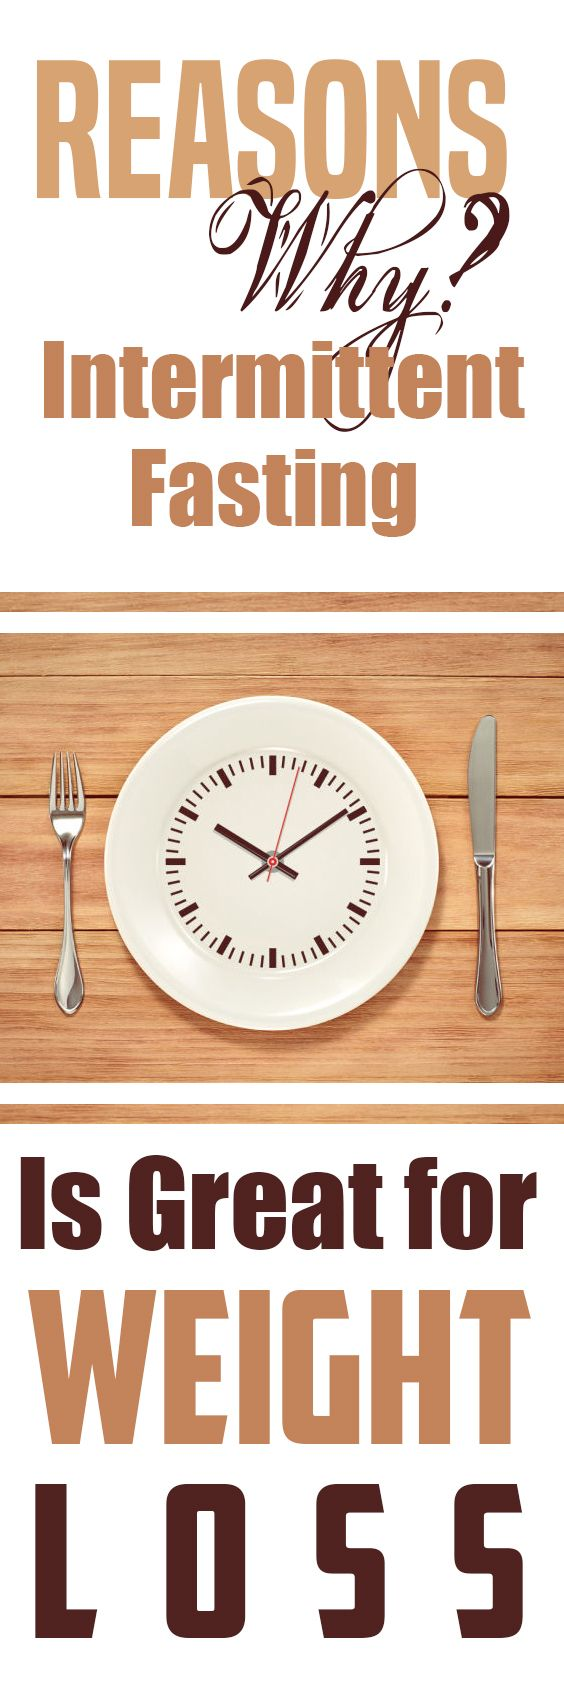 As a result of the rapidly rising numbers of obese and overweight people in society today, many dieting fads have cropped up. However, most of these diets have gotten a bad rap because they are deemed to be unhealthy and difficult to maintain. Intermittent fasting is rapidly becoming popular, especially because it is not particularly restrictiveRead More